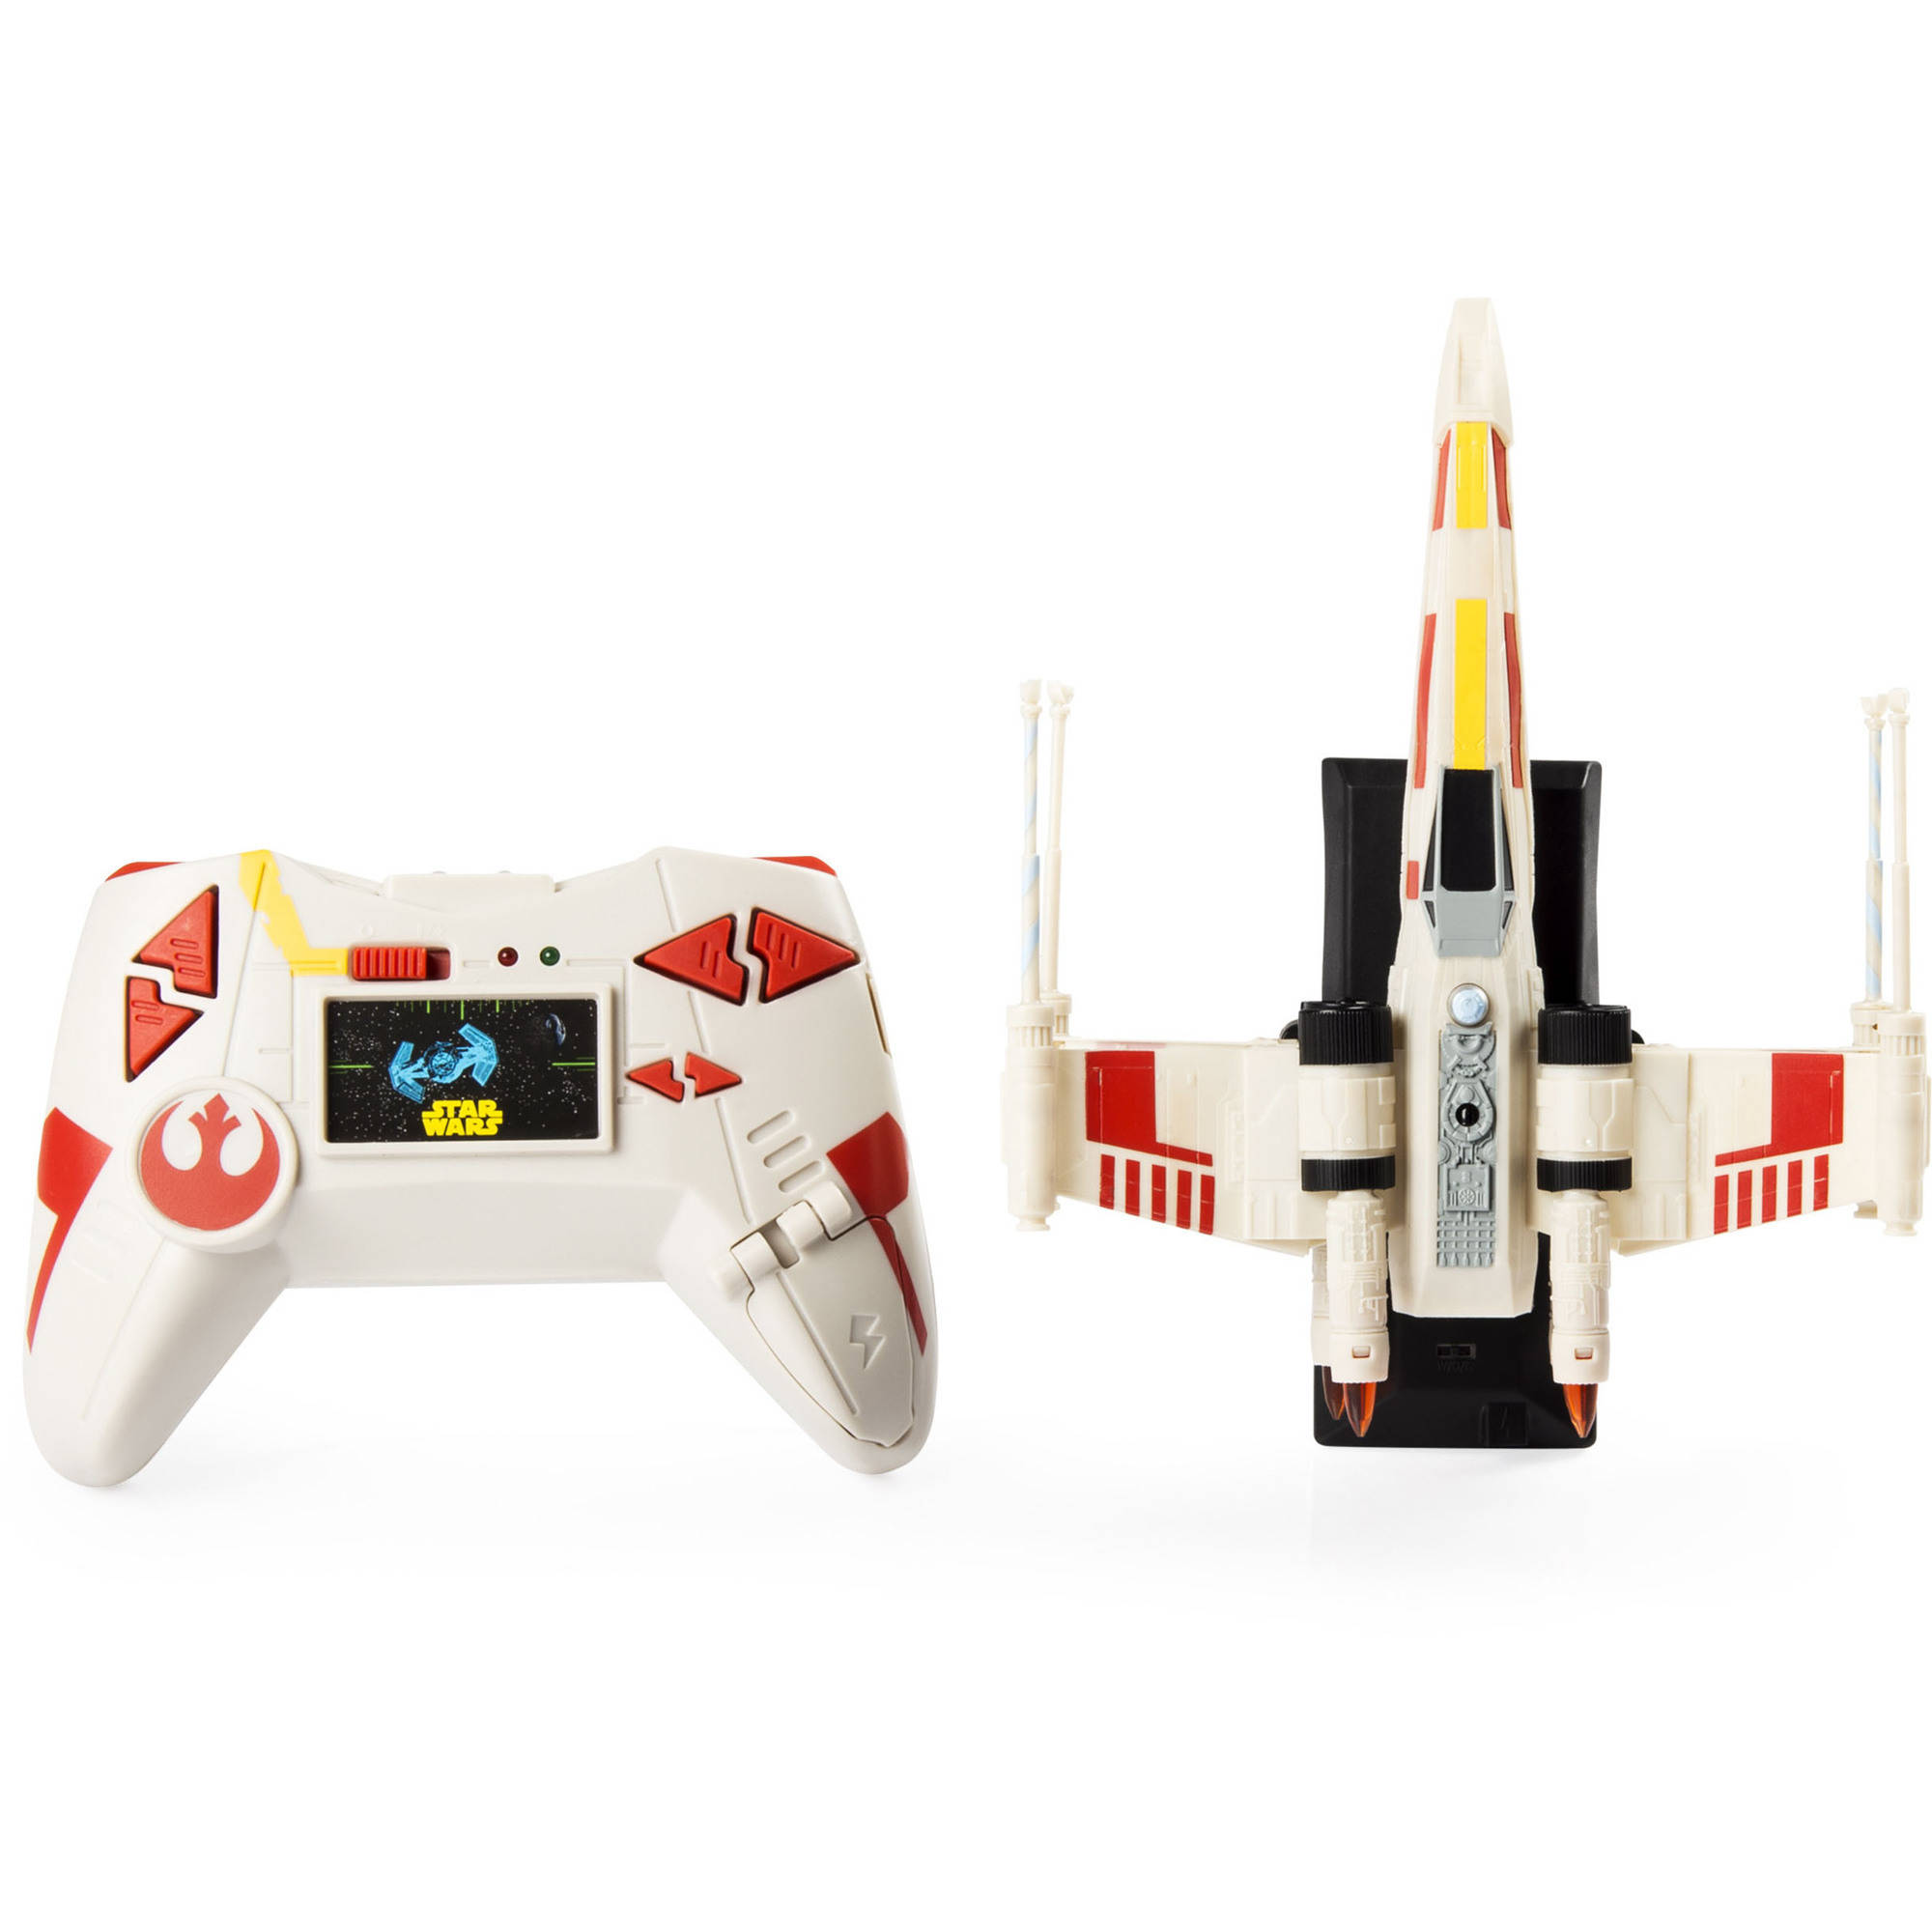 Air Hogs Star Wars Remote Control Zero Gravity X-Wing Starfighter